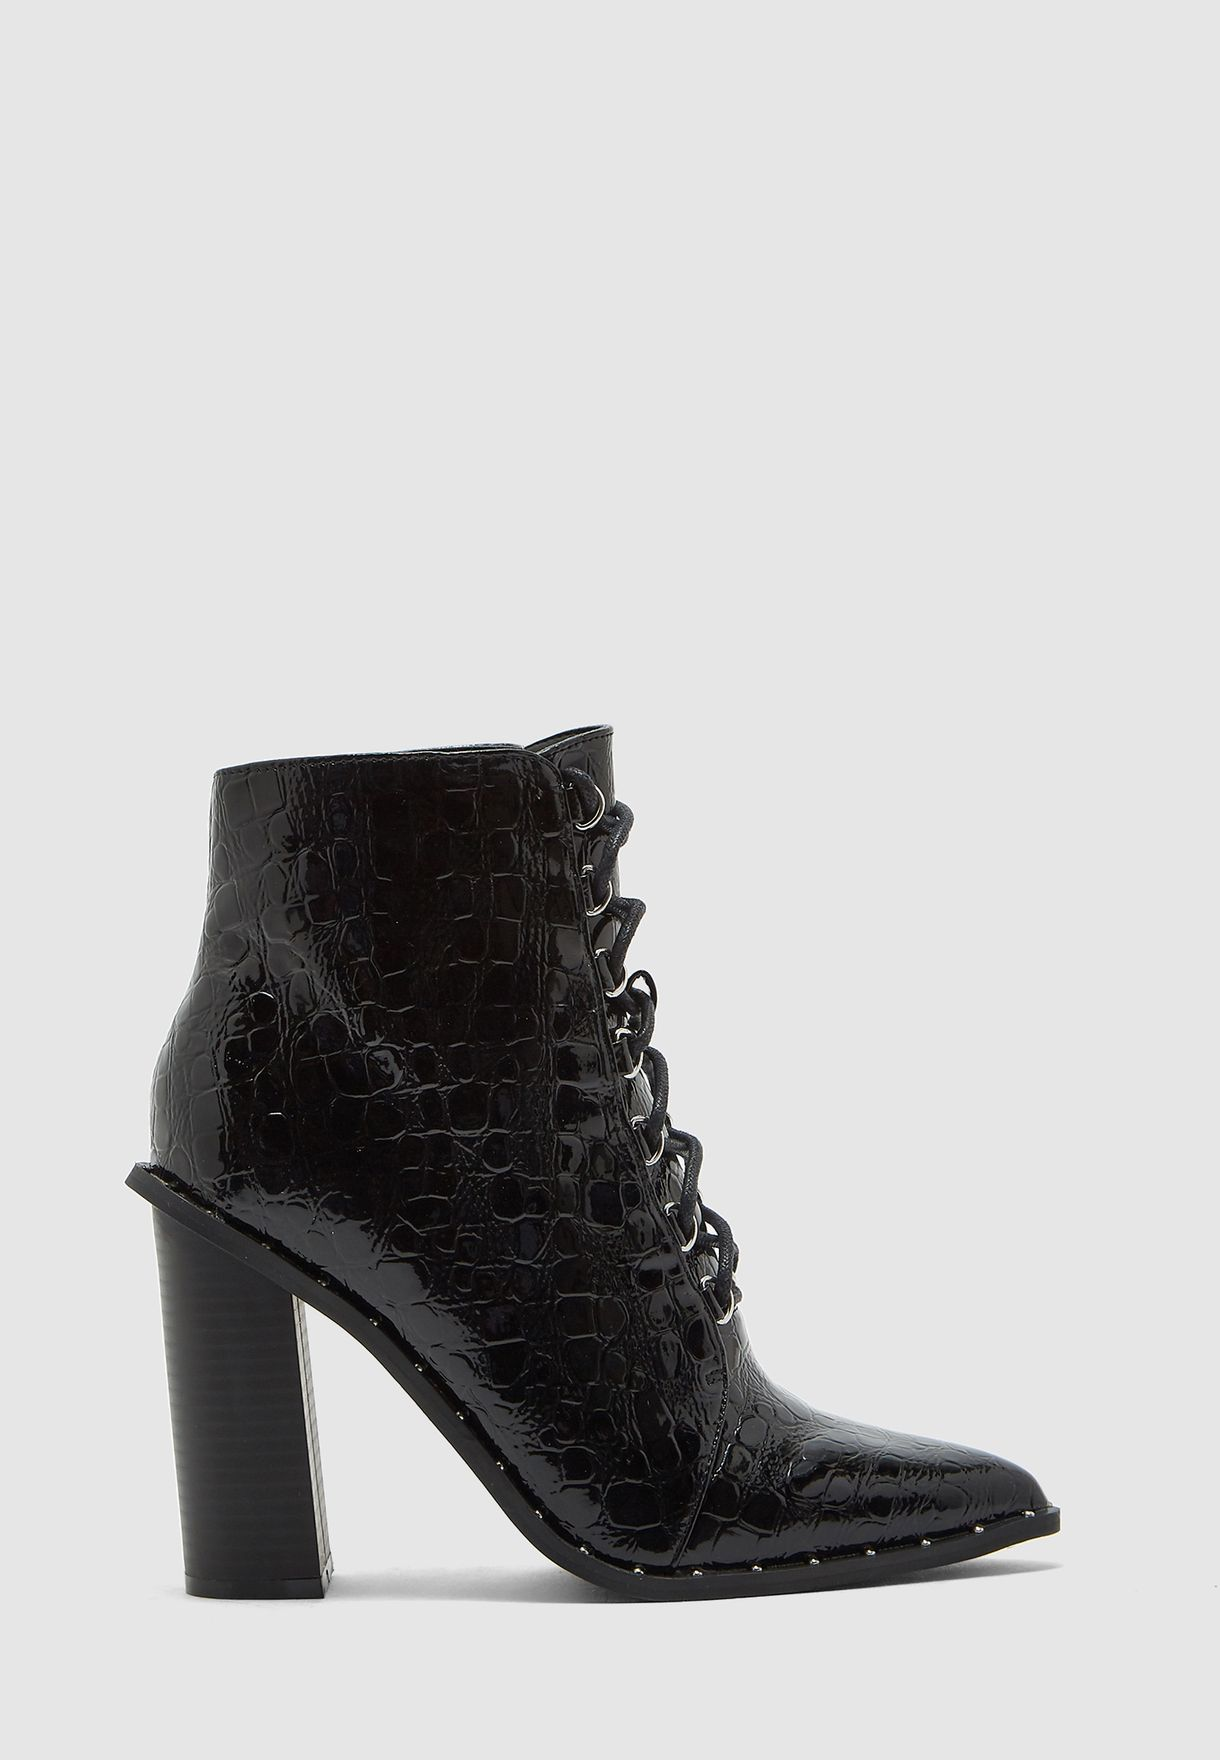 Croc Lace Up Pointed Toe Boot